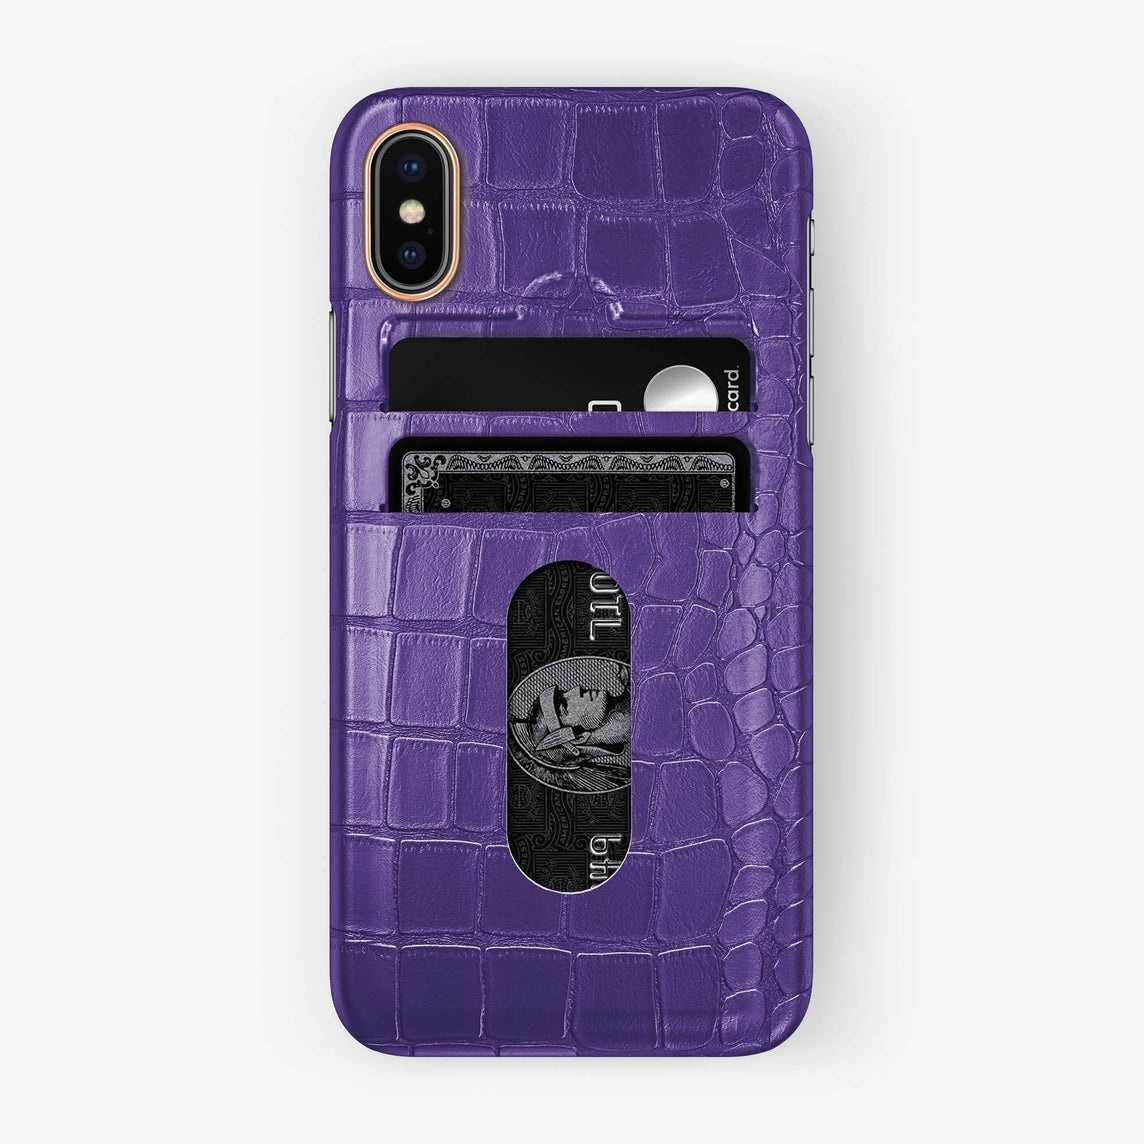 Alligator Card Holder Case iPhone Xs Max | Purple - Rose Gold - Hadoro